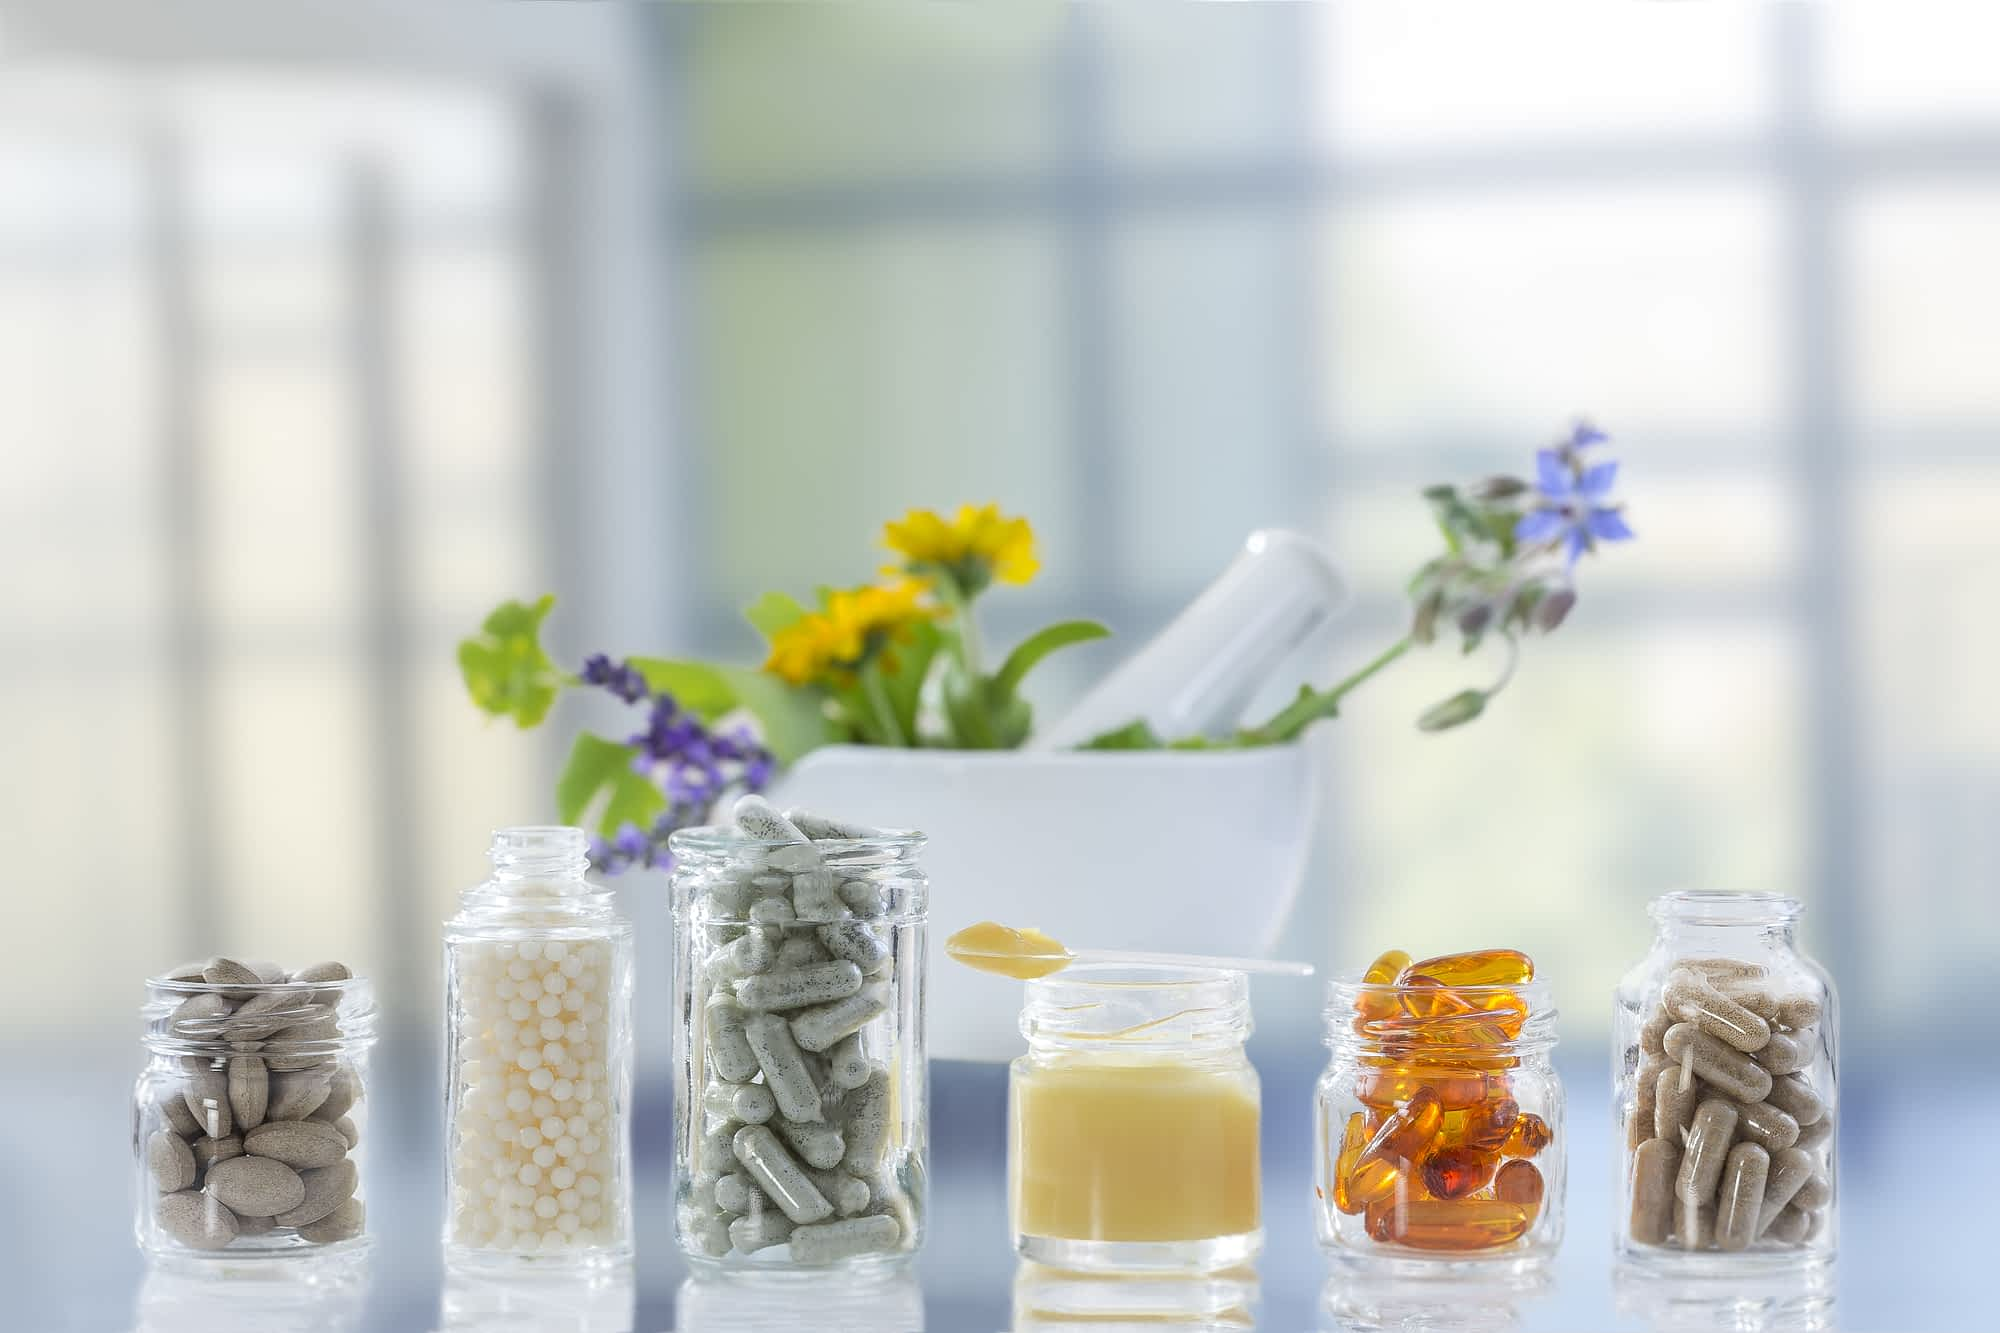 natural allergy remedies - supplements in glass jars lined up